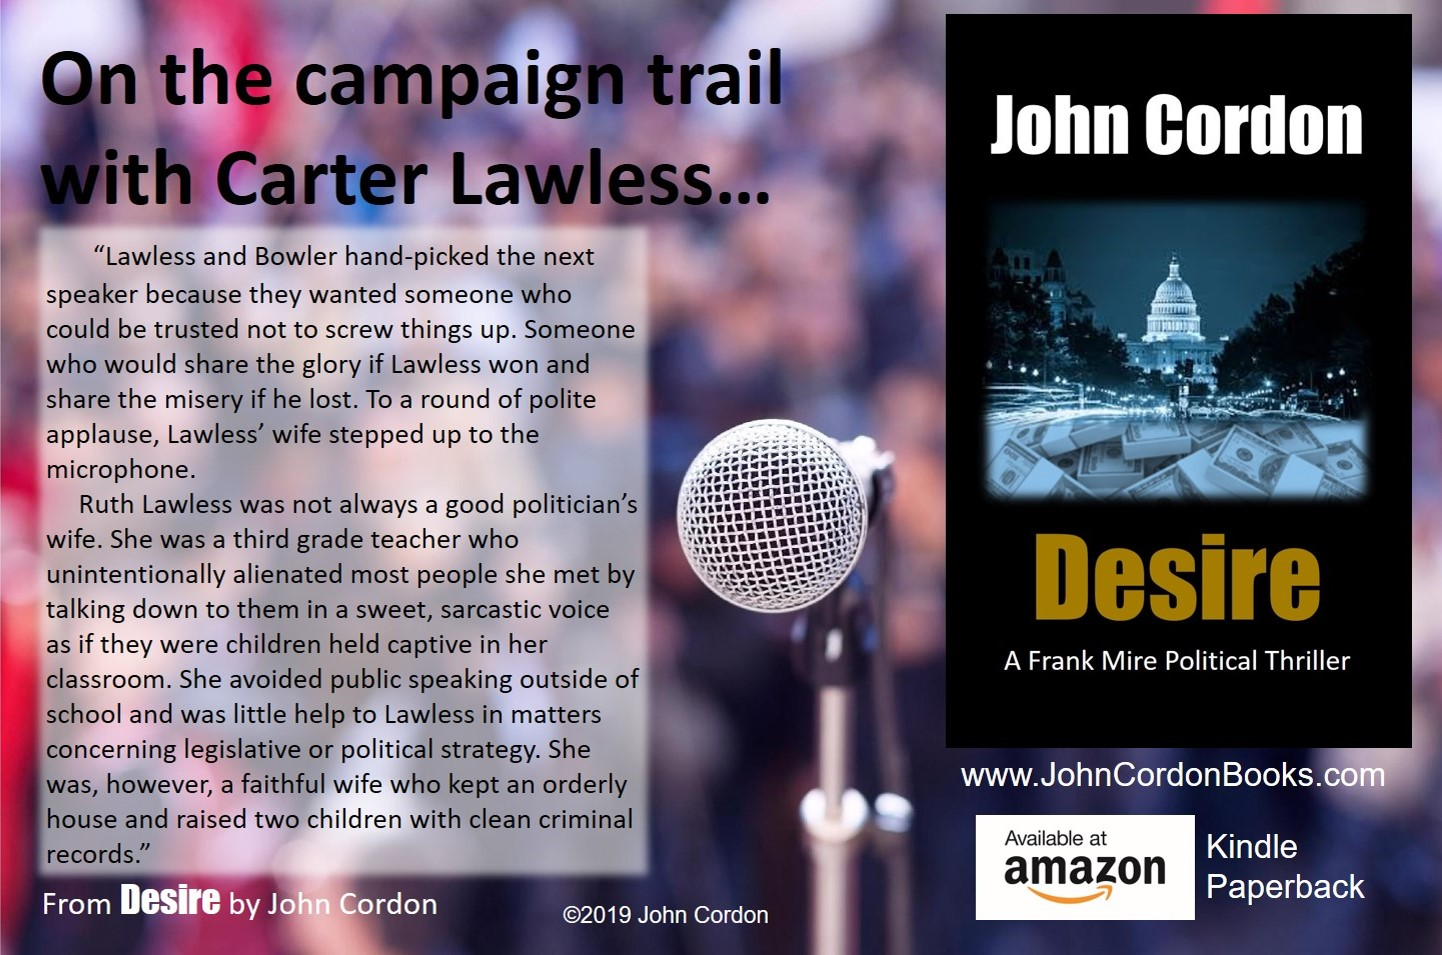 On The Campaign Trail With Carter Lawless Desire by John Cordon